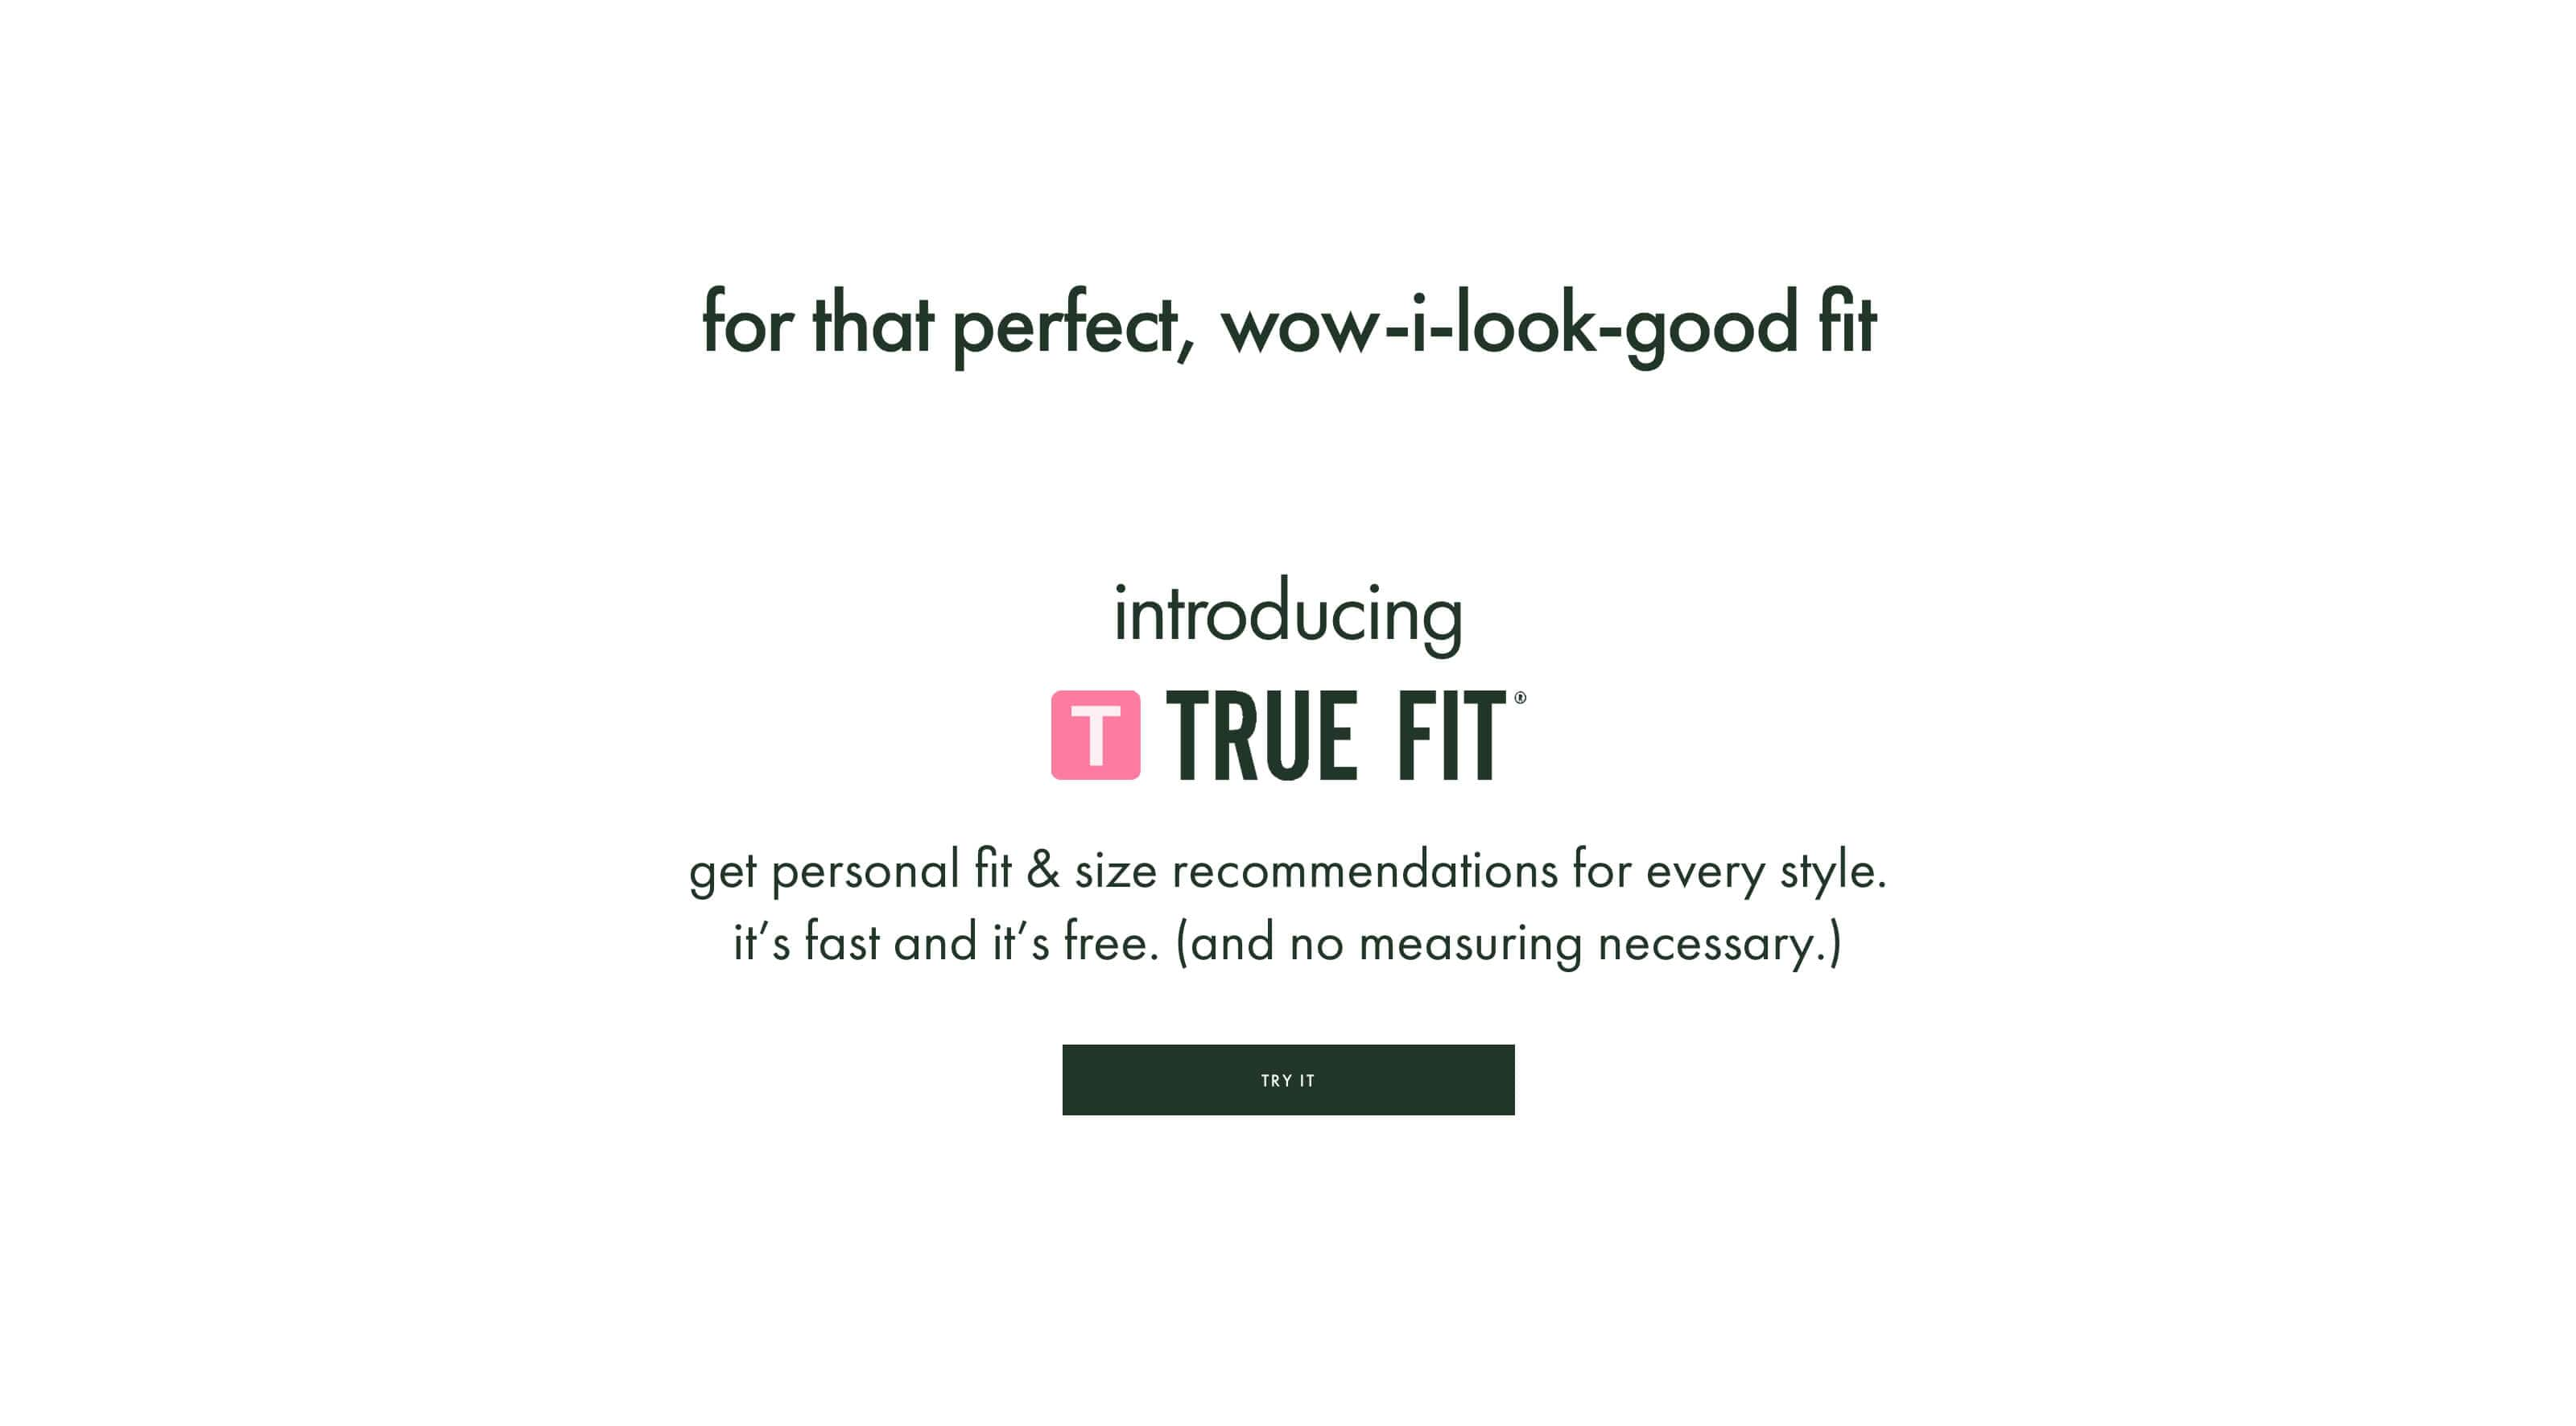 for that perfect, wow-i-look-good fit. introducring true fit. get personal fit & size recommendations for every style. it's fast and it's free. (and no measuring necessary.) try it.